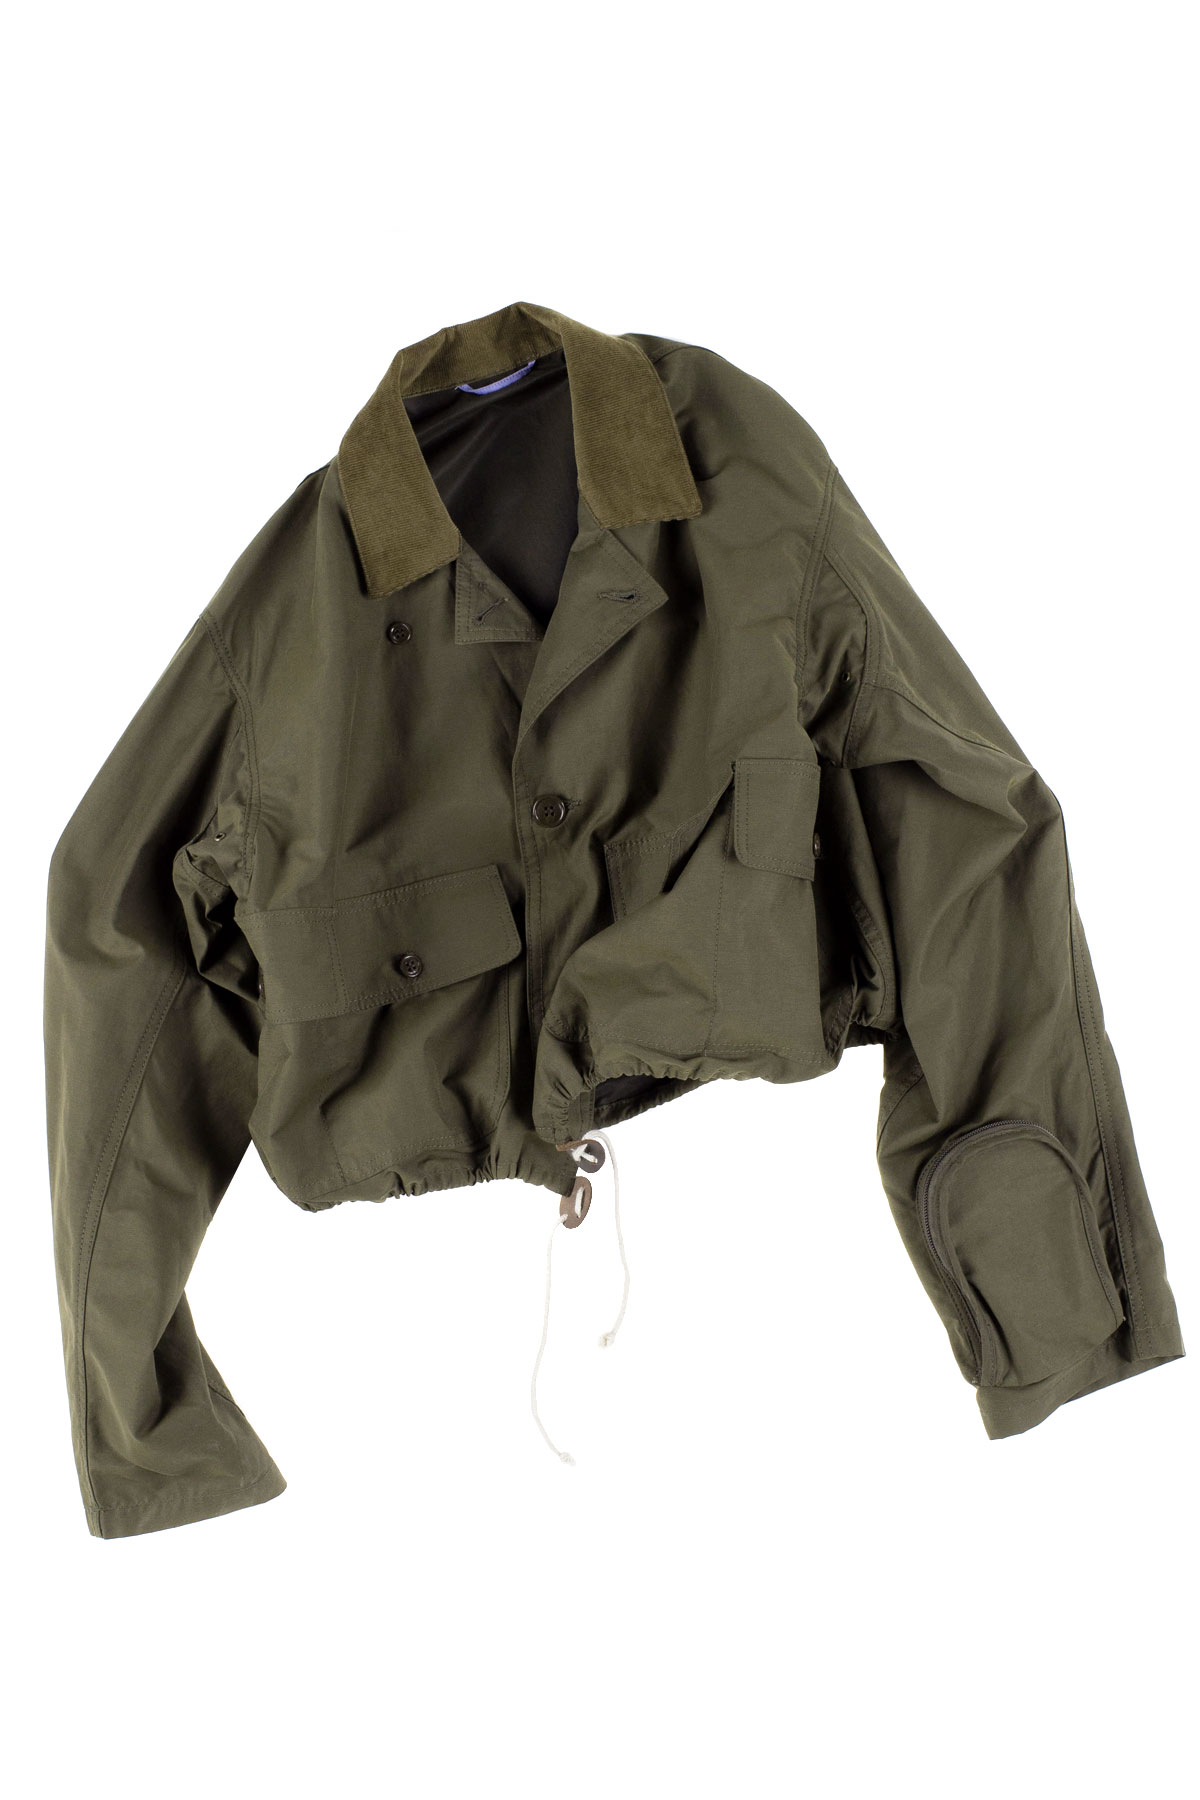 Kenneth Field : Wading Fishing Jacket (Olive)